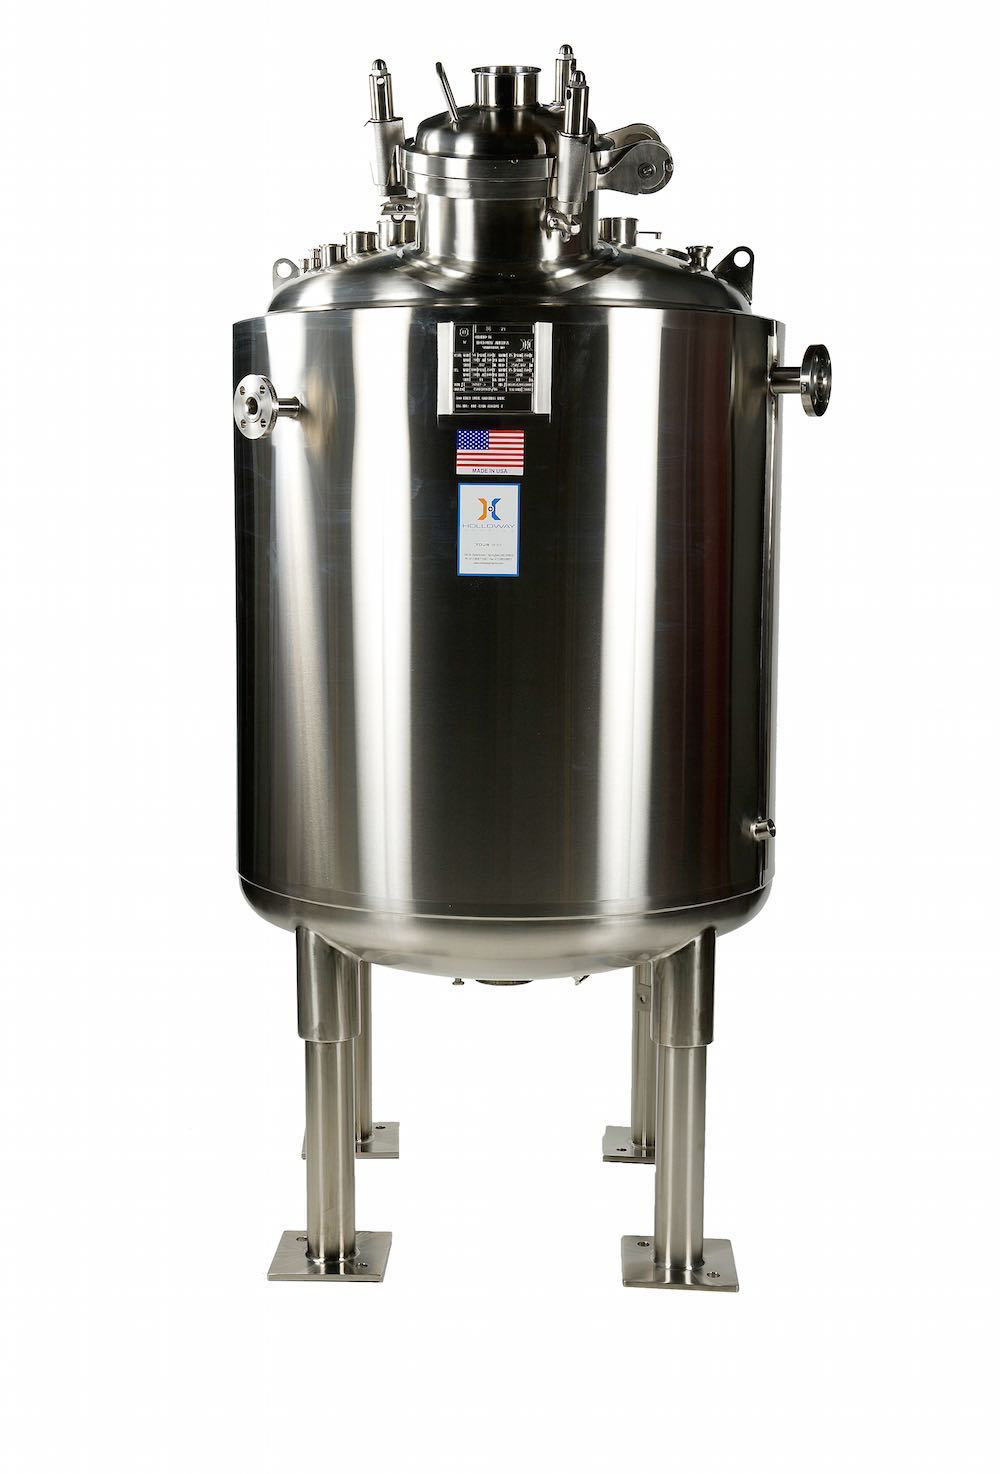 HOLLOWAY ASME pressure vessels are built to last.